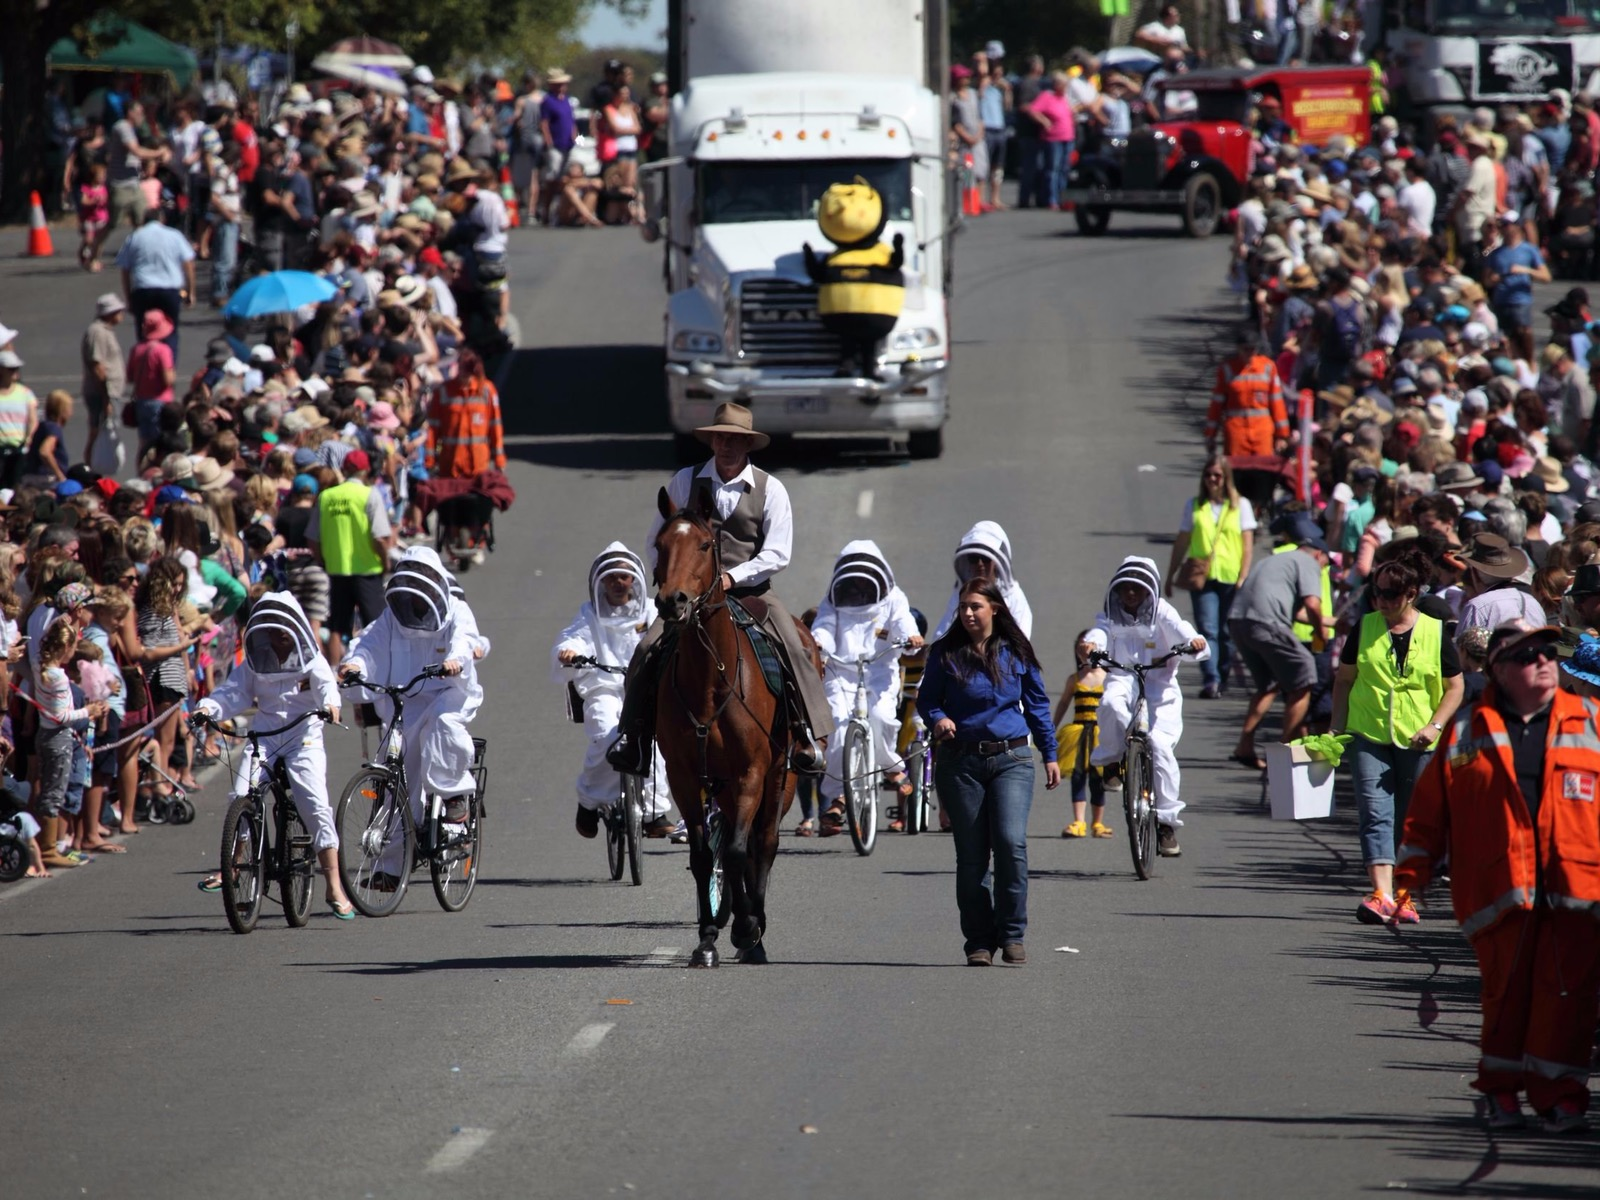 Horse and rider leading the parade in the main street of Beechworth